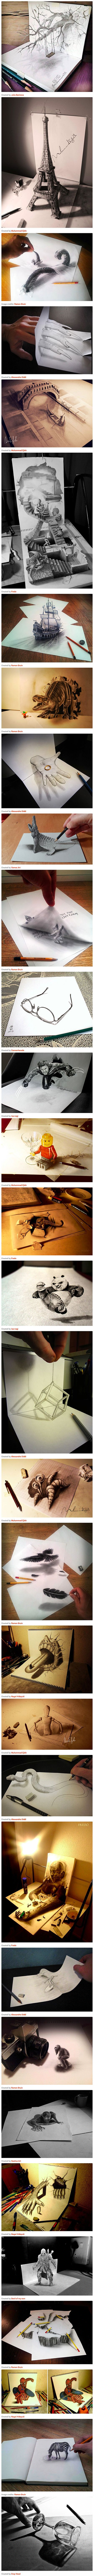 A trained artist can already create detailed pencil drawings, but when they achieve a true mastery of perspective and 3D space, their art, both literally and figuratively, reaches a whole new level. Here are 33 examples of 3D pencil drawings that look like they leap off of the page at you.